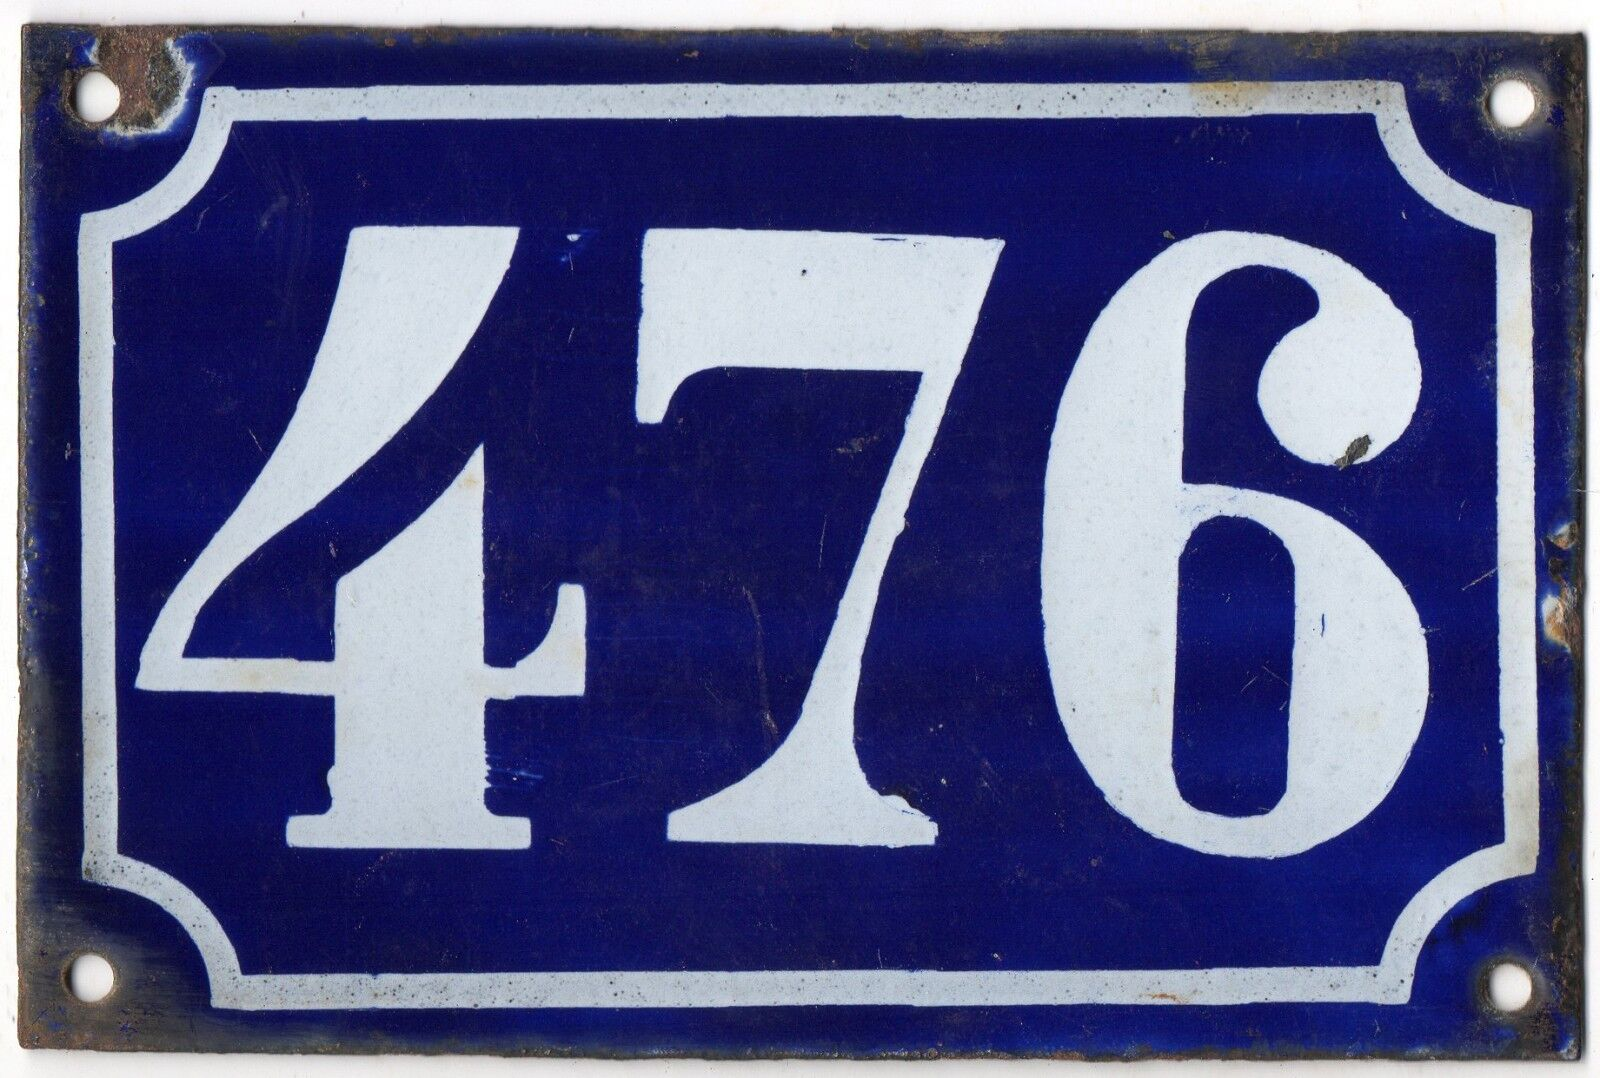 Old blue French house number 476 door gate plate plaque enamel metal sign c1900